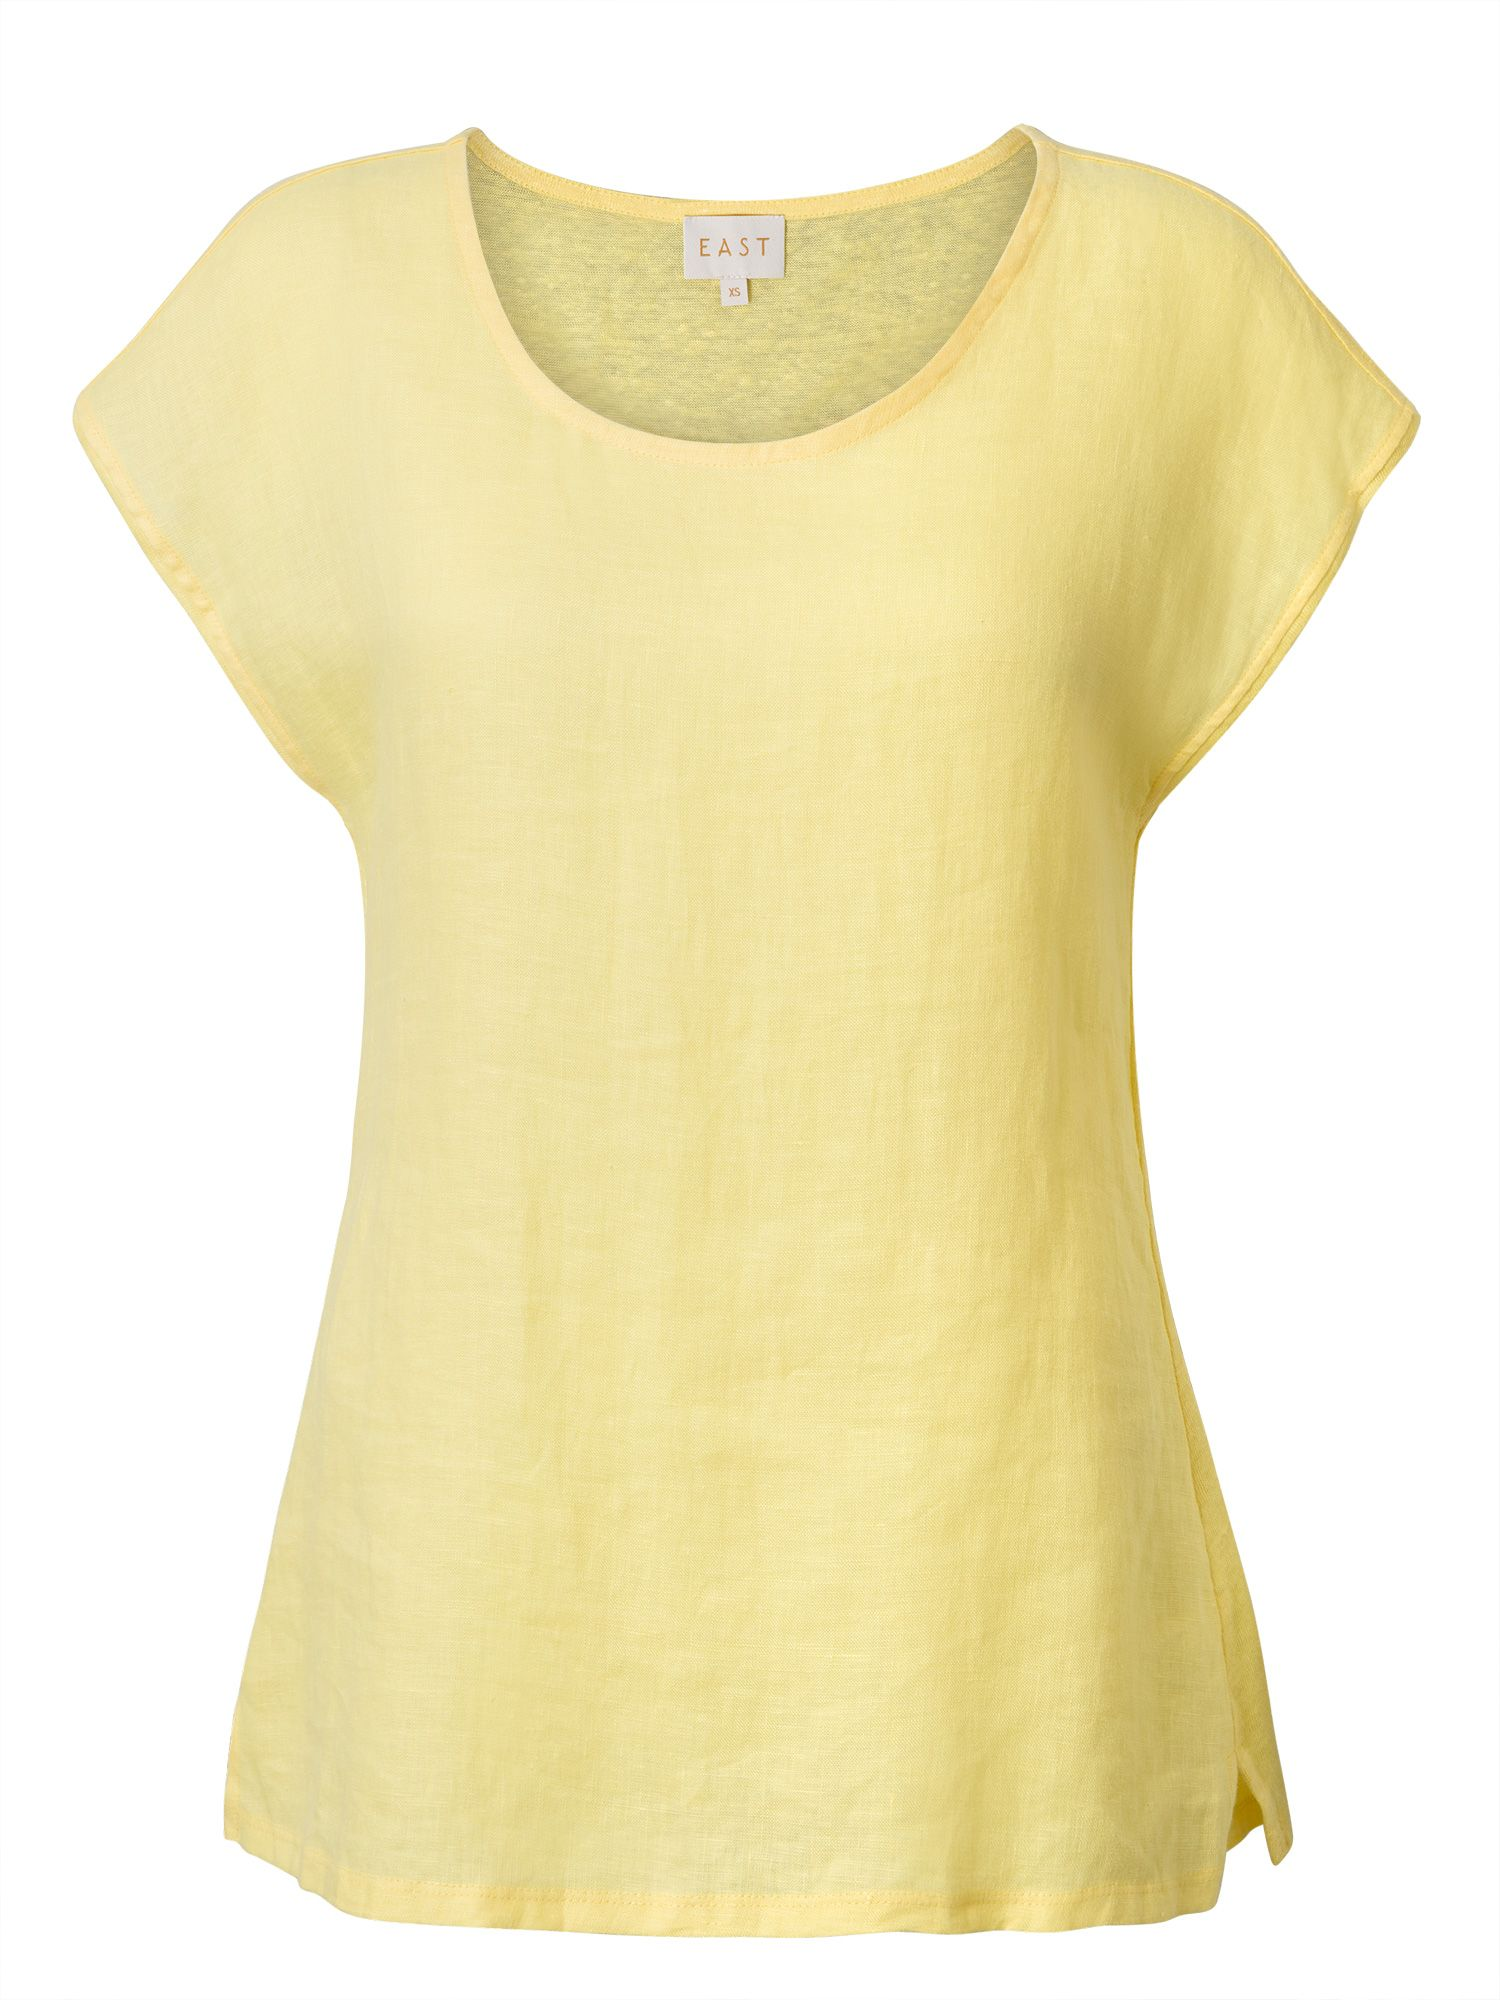 East Combination Jersey Tee, Yellow